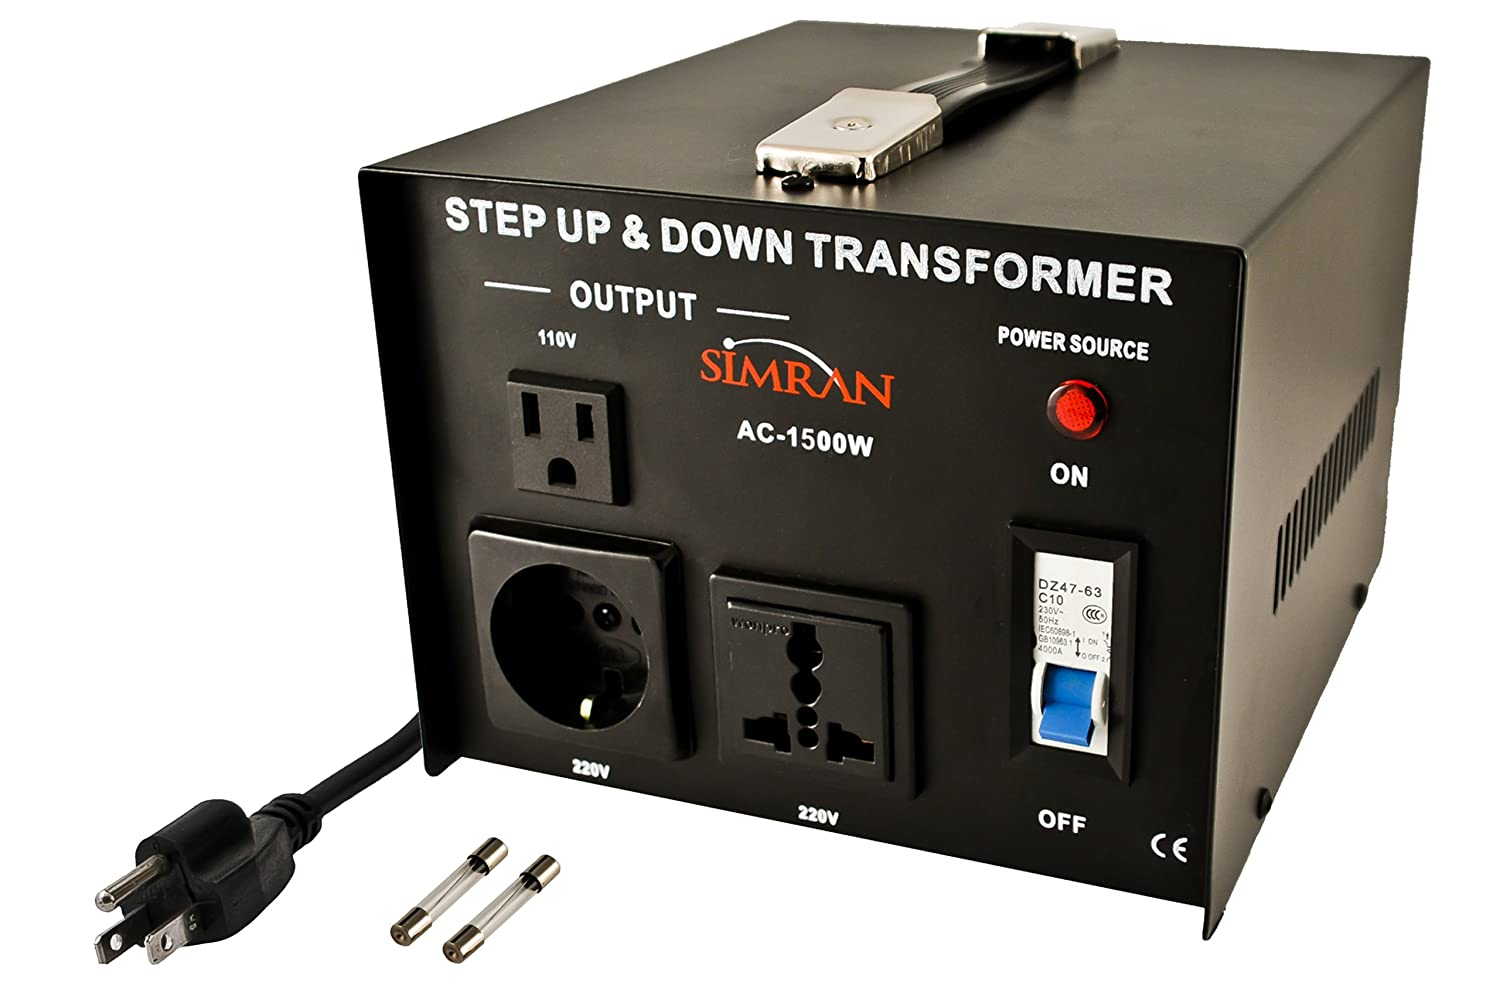 Simran Ac 5000 Step Up Down Voltage Converter Transformer 110v 220v House Wiring On Big Steps In Building Change Our To 12 Volt Dc Watts